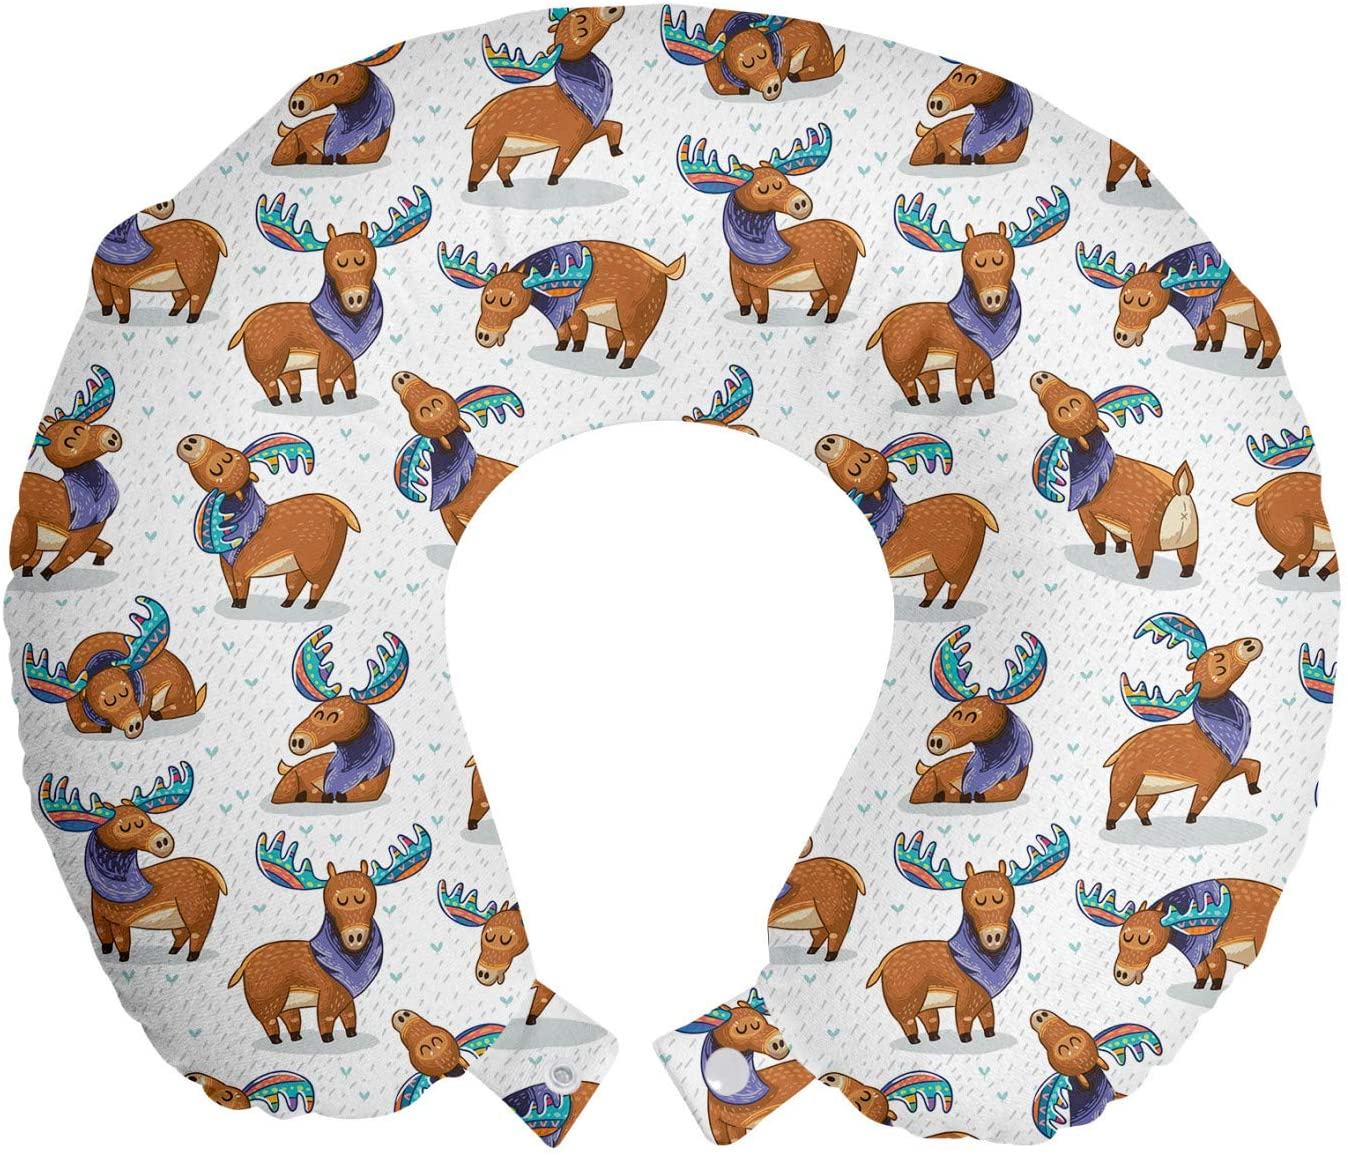 Lunarable Deer Travel Pillow Neck Rest, Moose in Cartoon Elks with Rainbow Antlers Kid Cheerful Comic Pattern, Memory Foam Traveling Accessory for Airplane and Car, 12